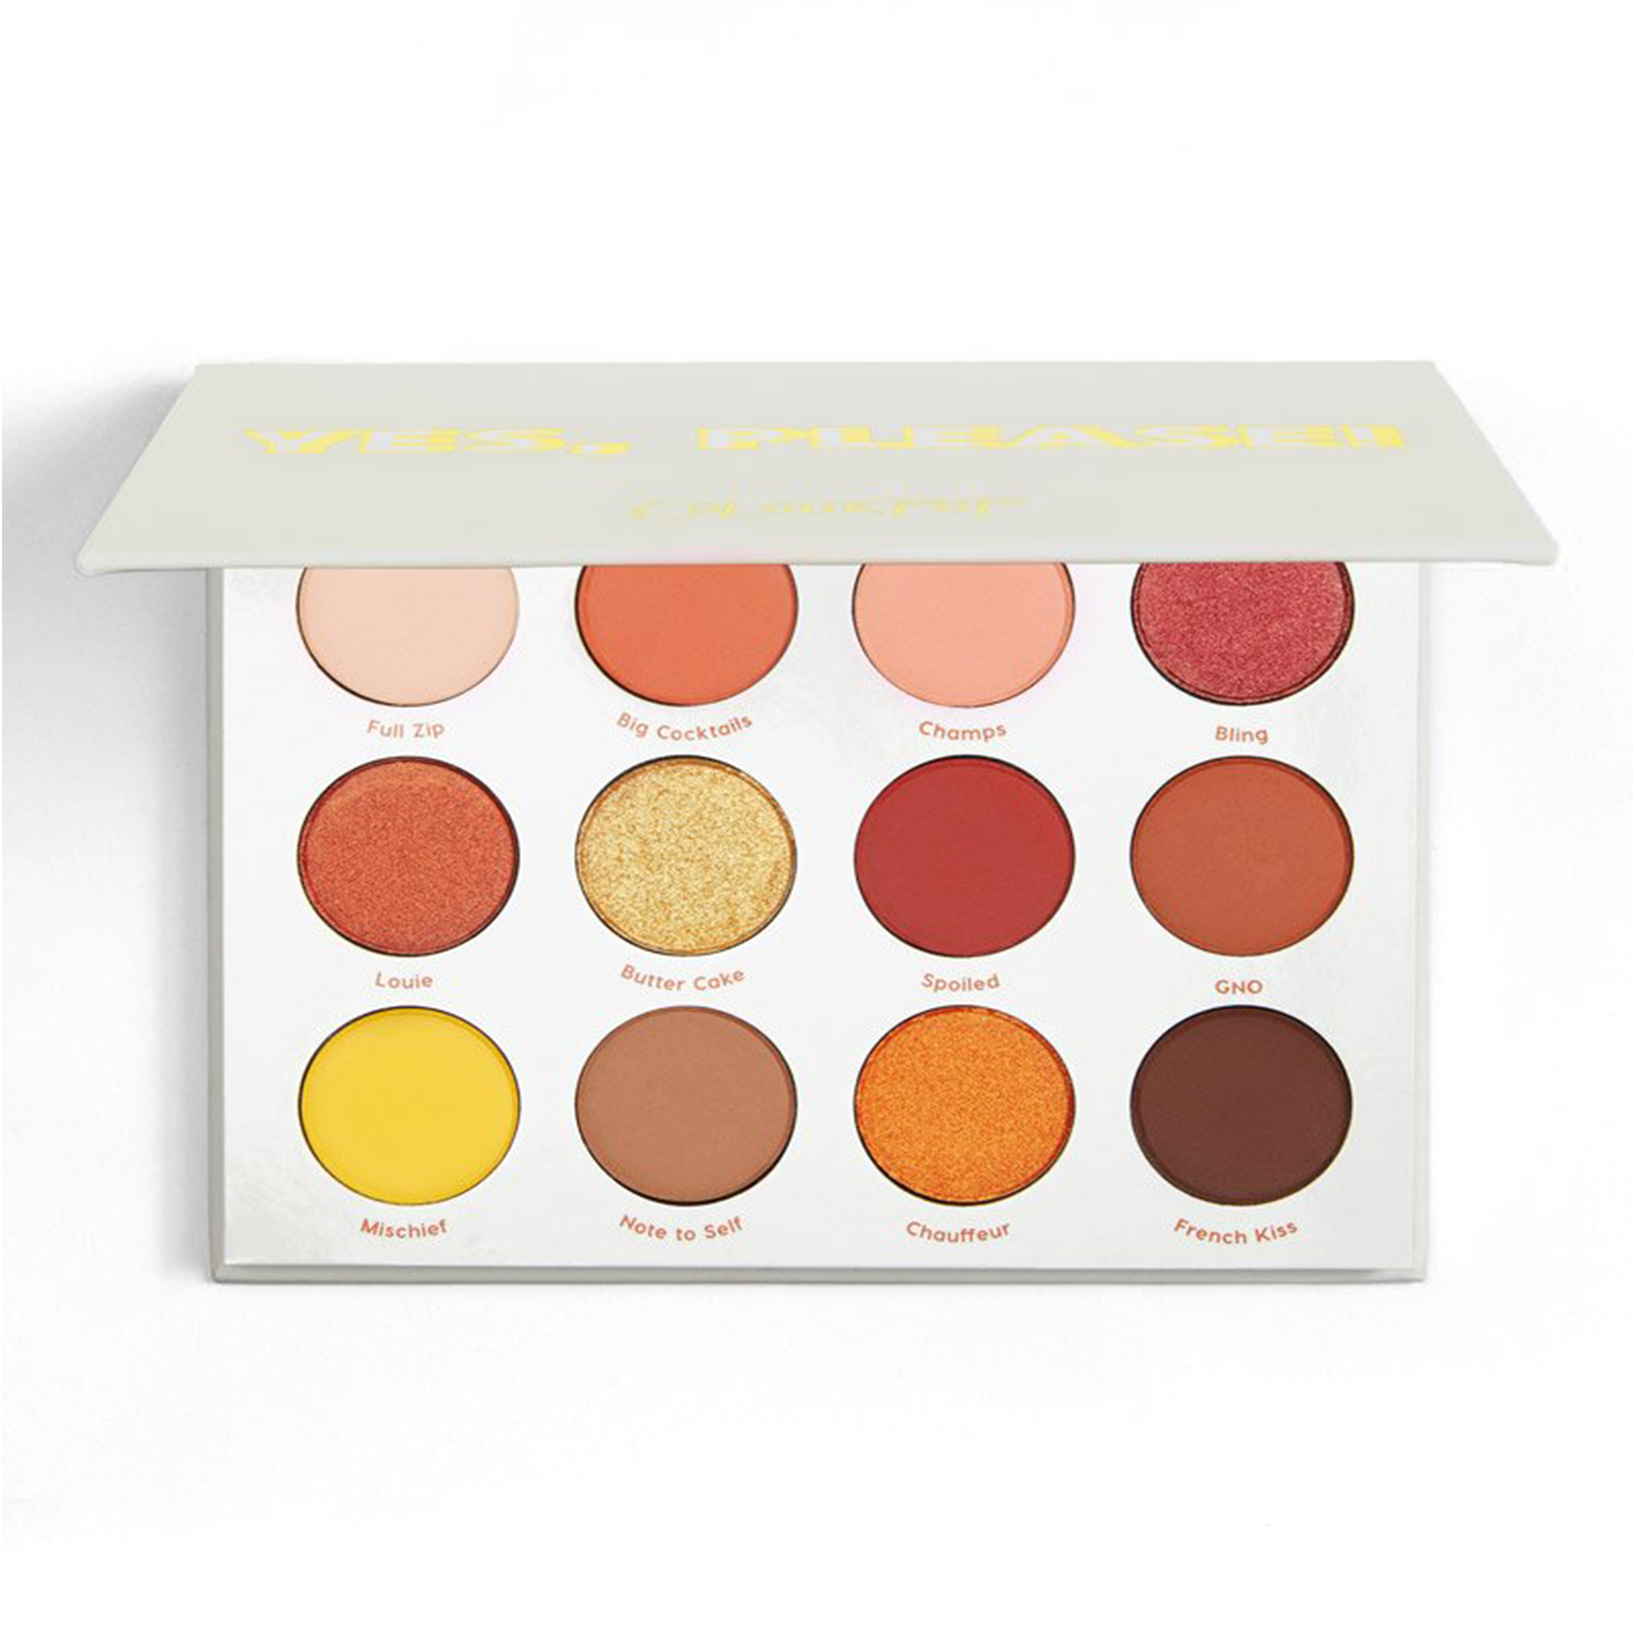 Colourpop yes please palette 0